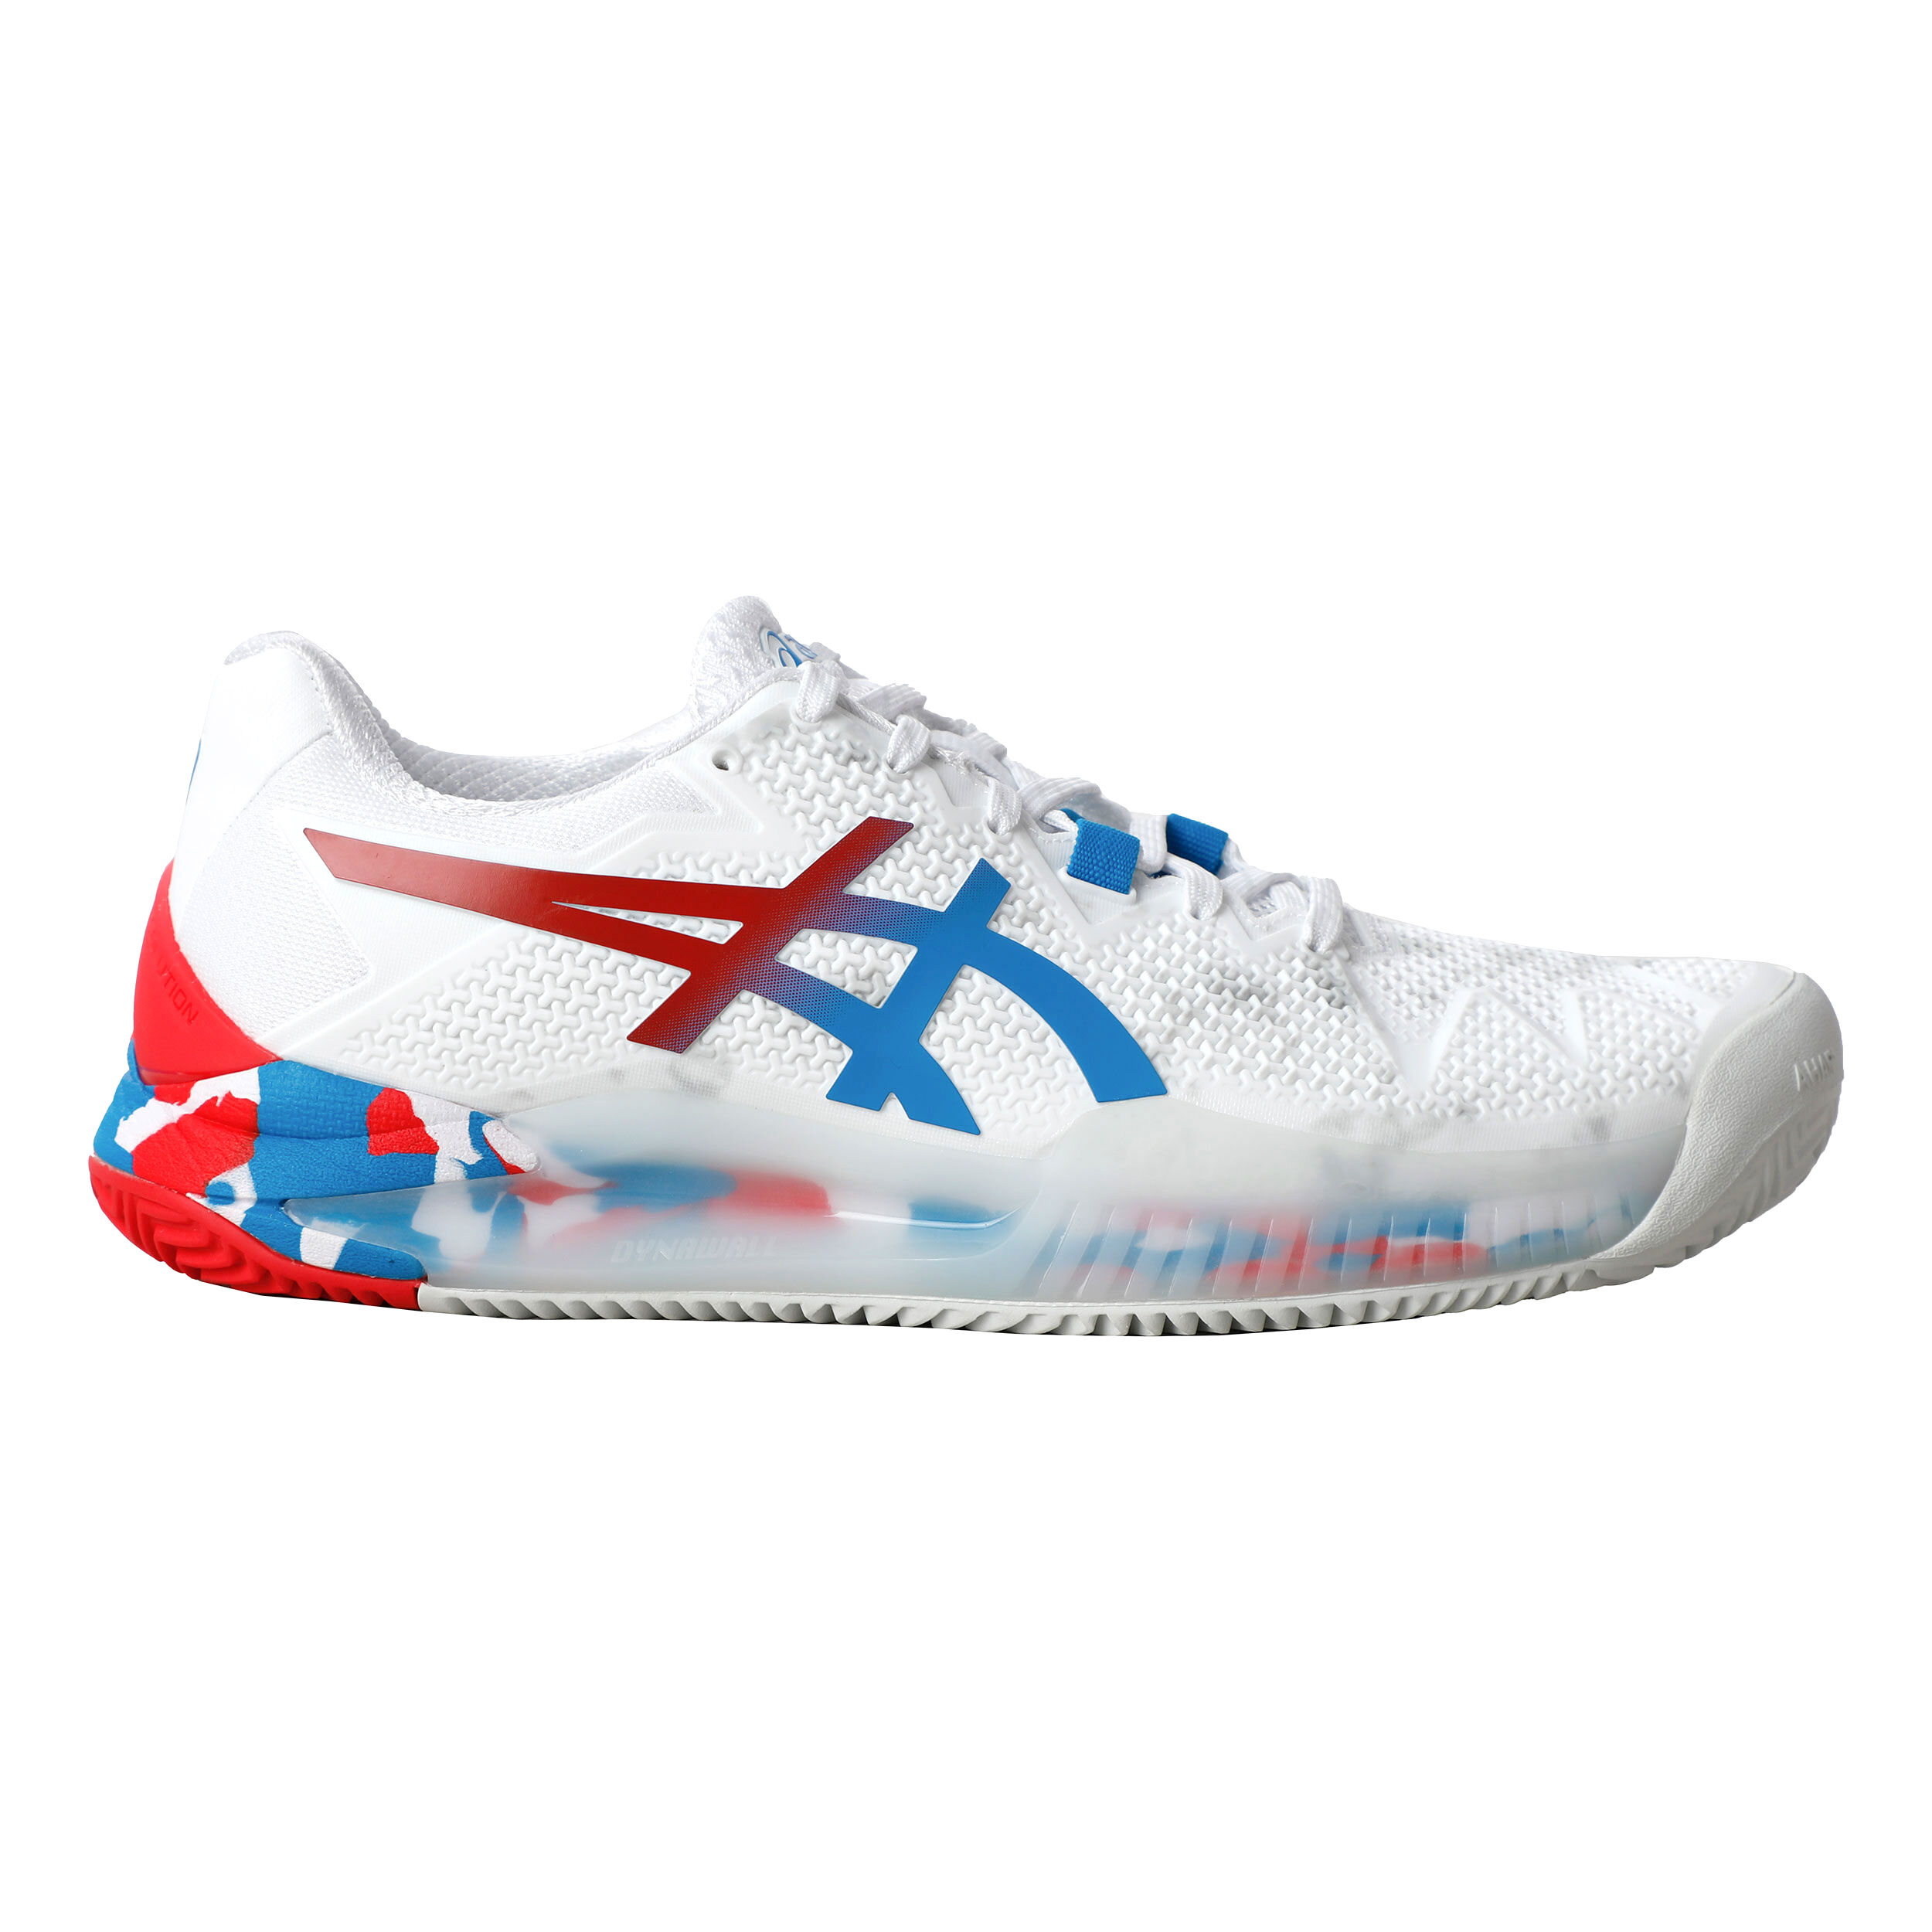 Asics Gel-Resolution 8 L.E. Clay Sandplatzschuh Damen - Weiß ...